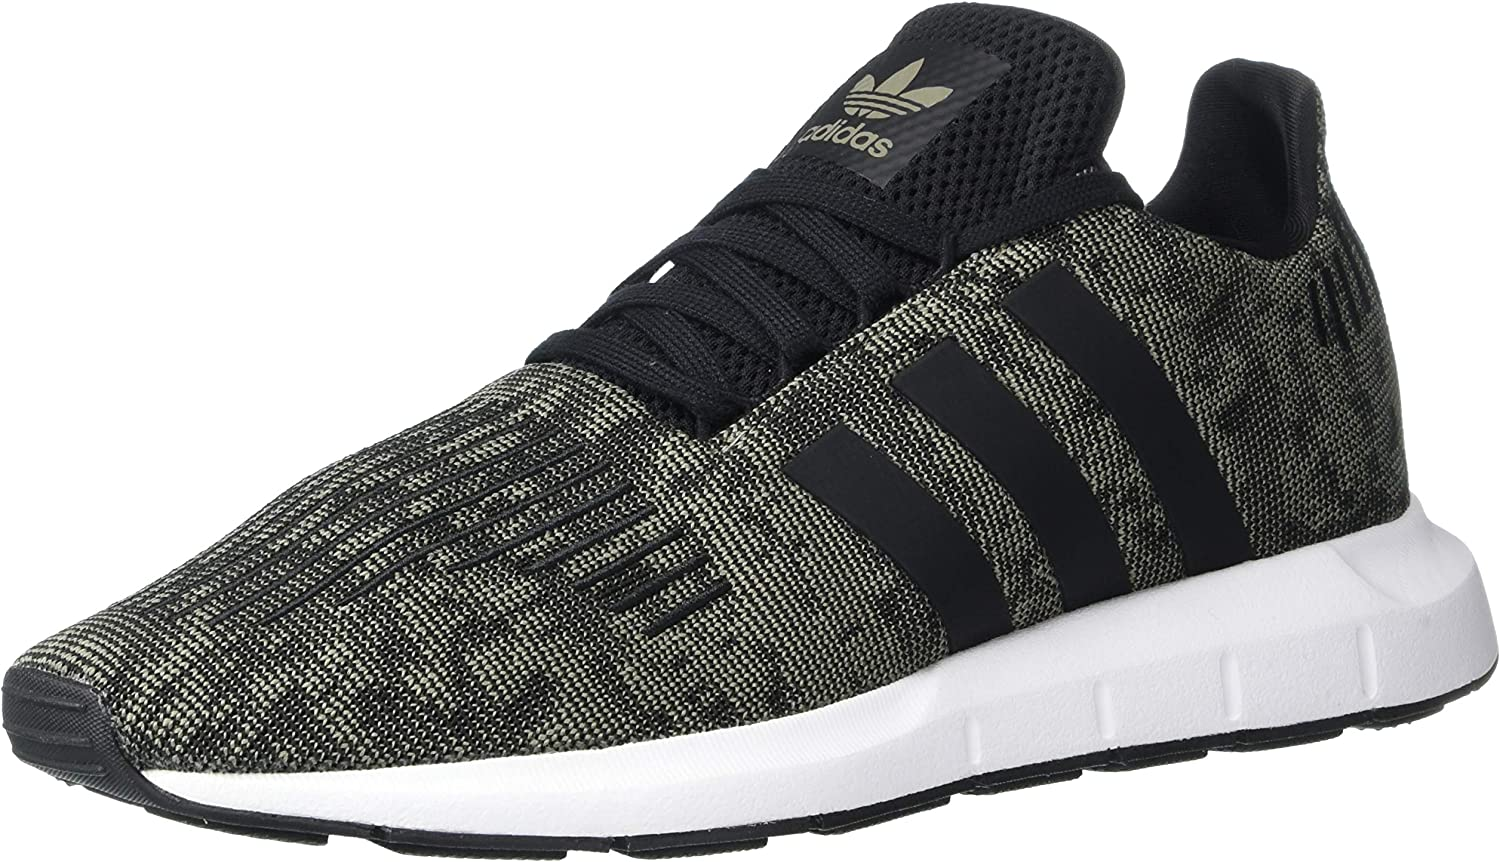 adidas Originals Men s Swift Running Shoe, Trace Cargo Black White, 8 M US